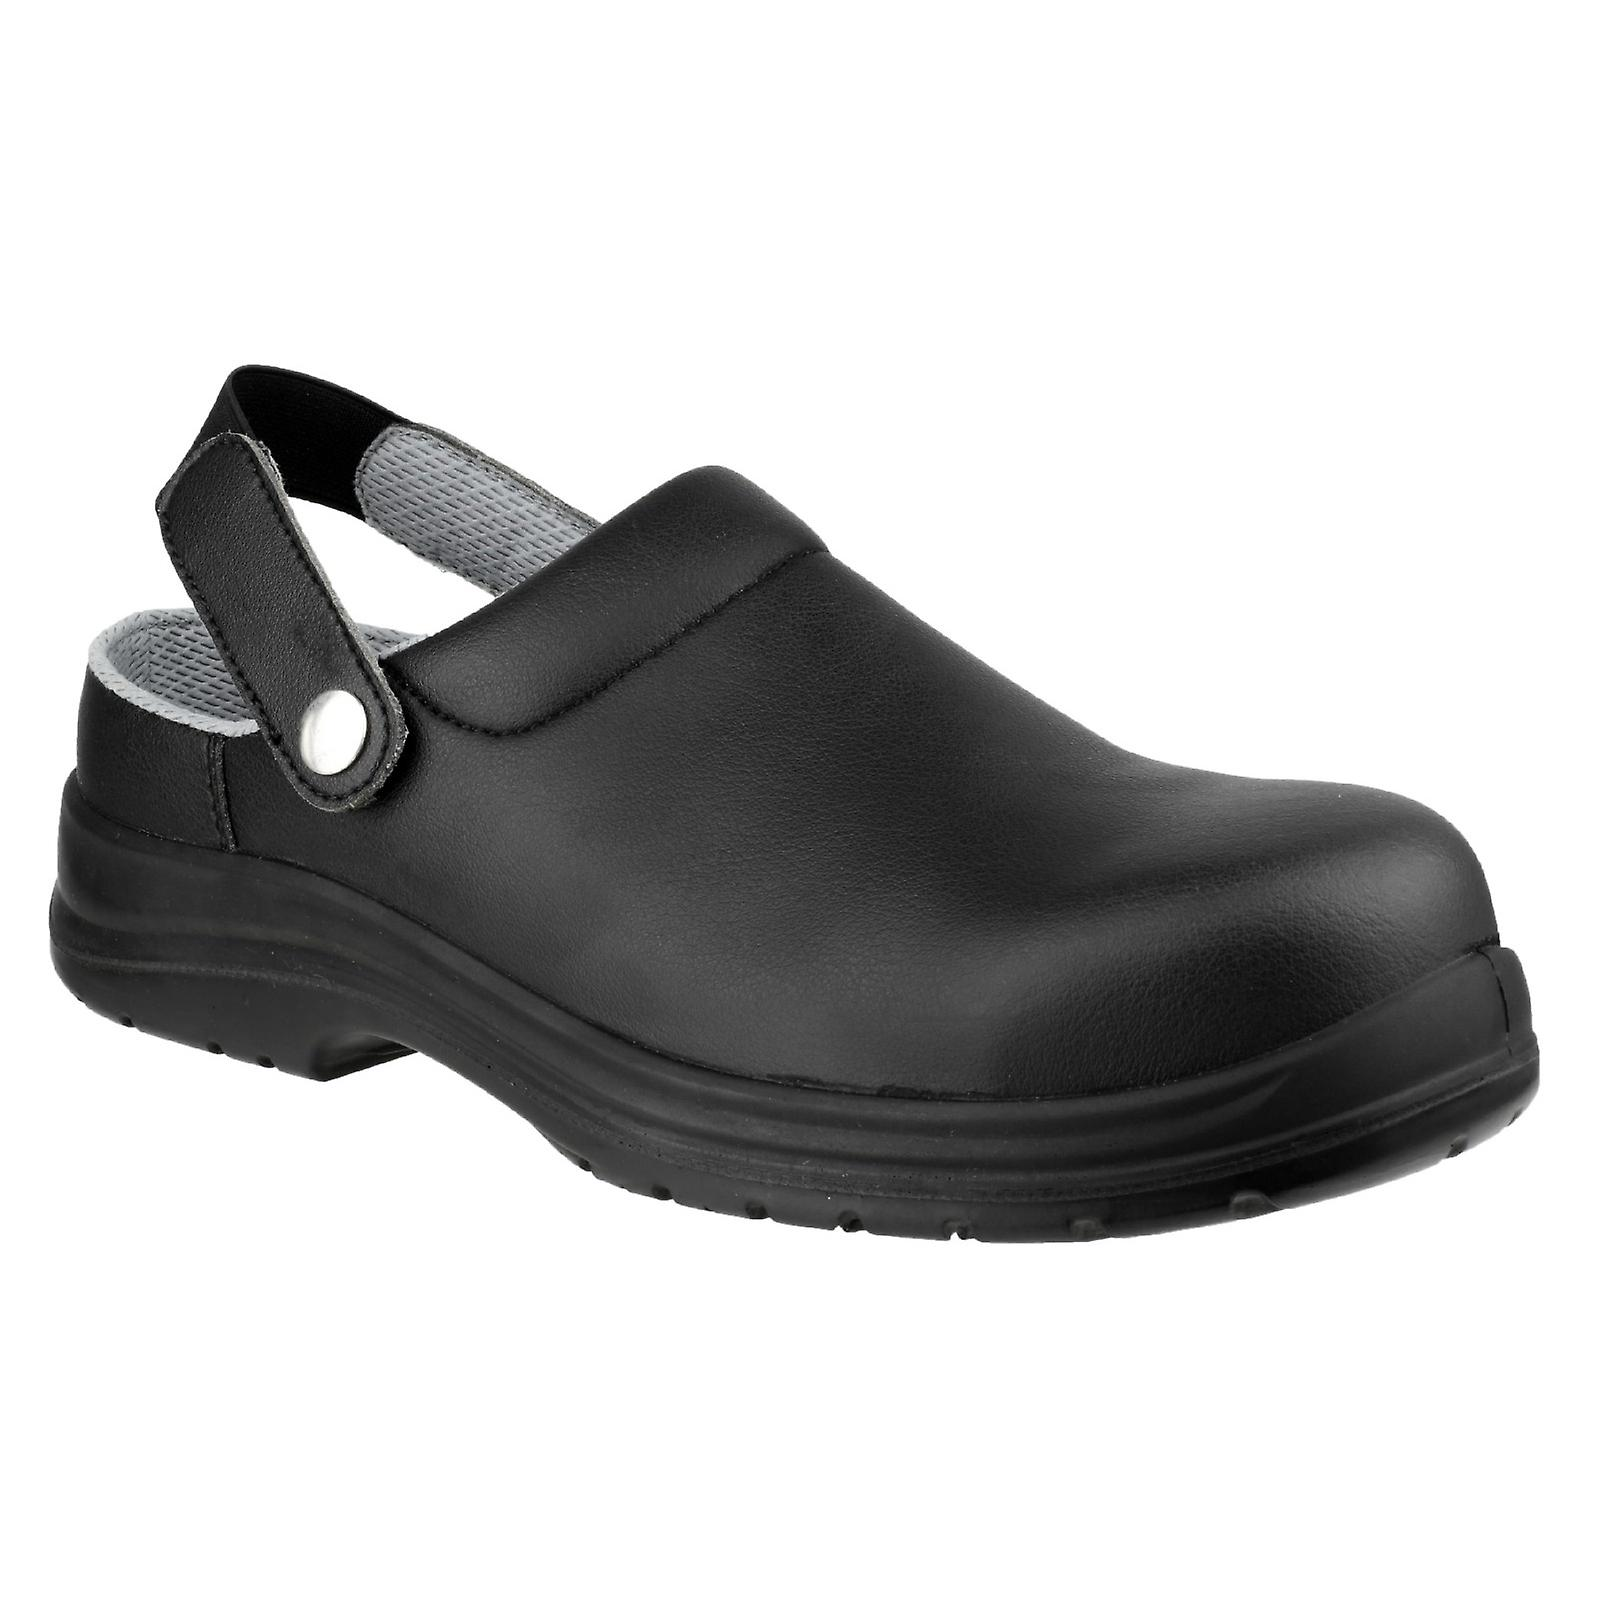 Amblers FS514 Unisex Clog Style Safety chaussures